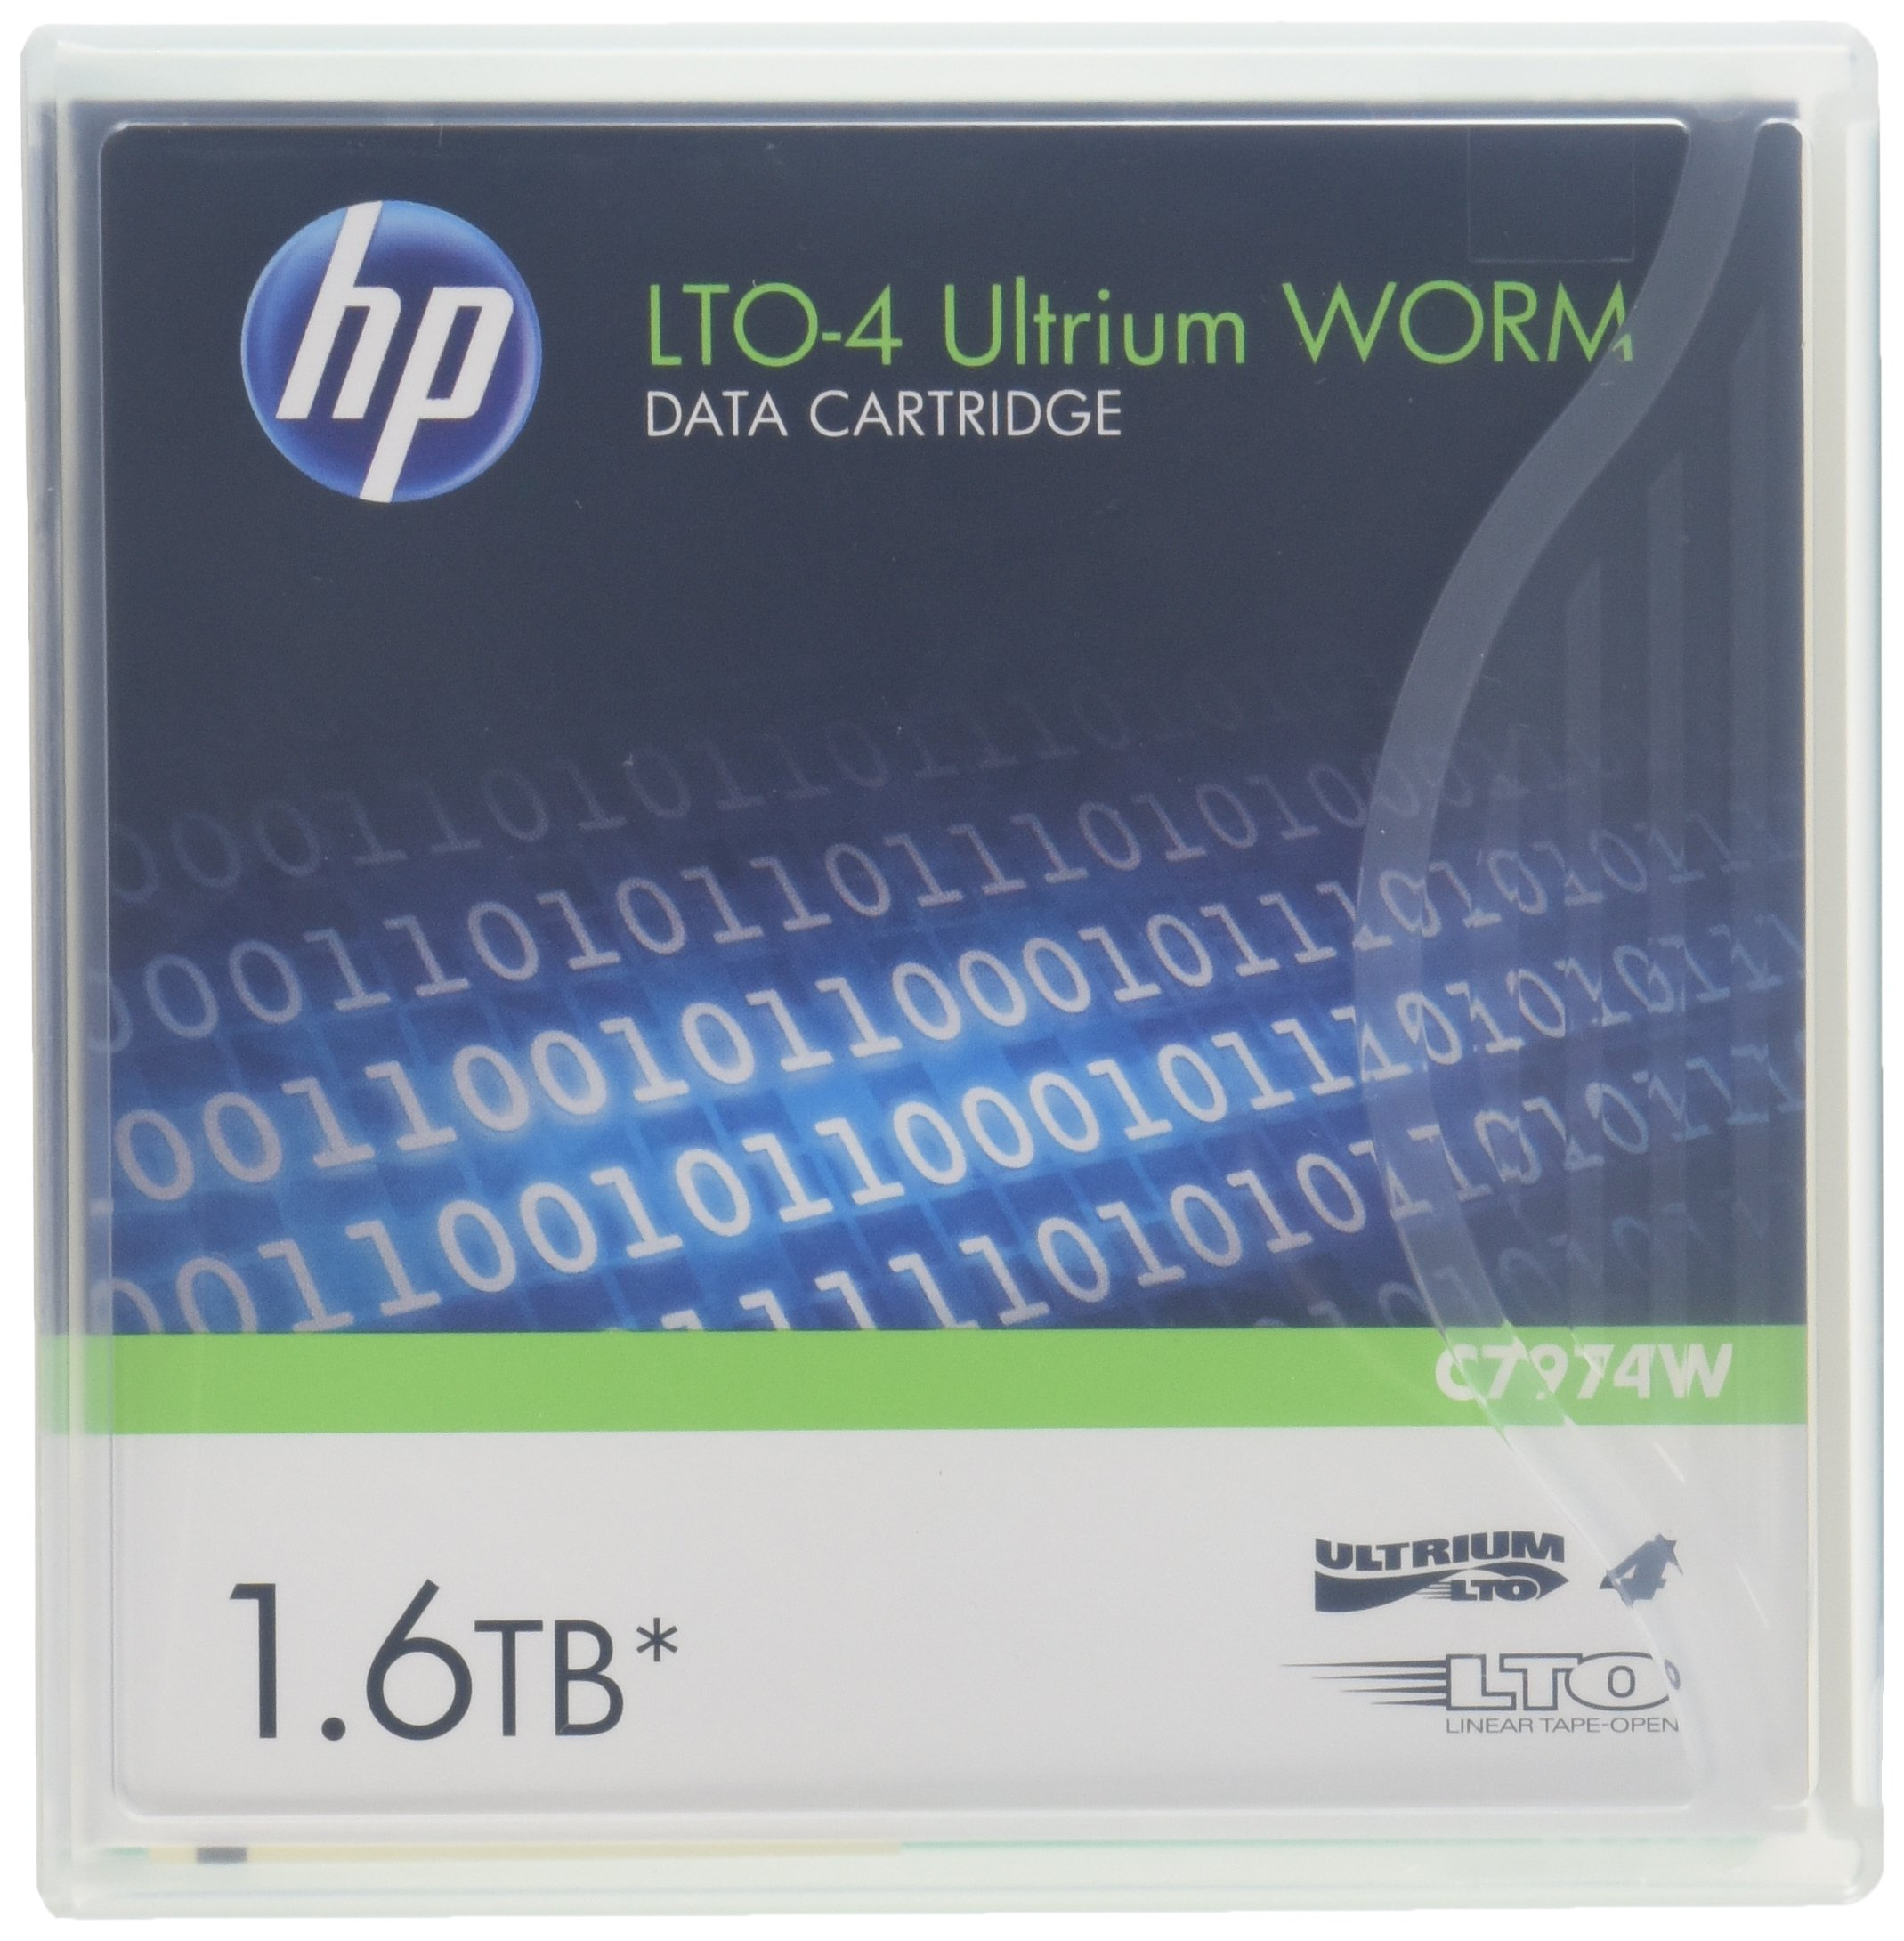 Data Cartridge Hp Ultrium Lto-4 1.6tb (c7974w